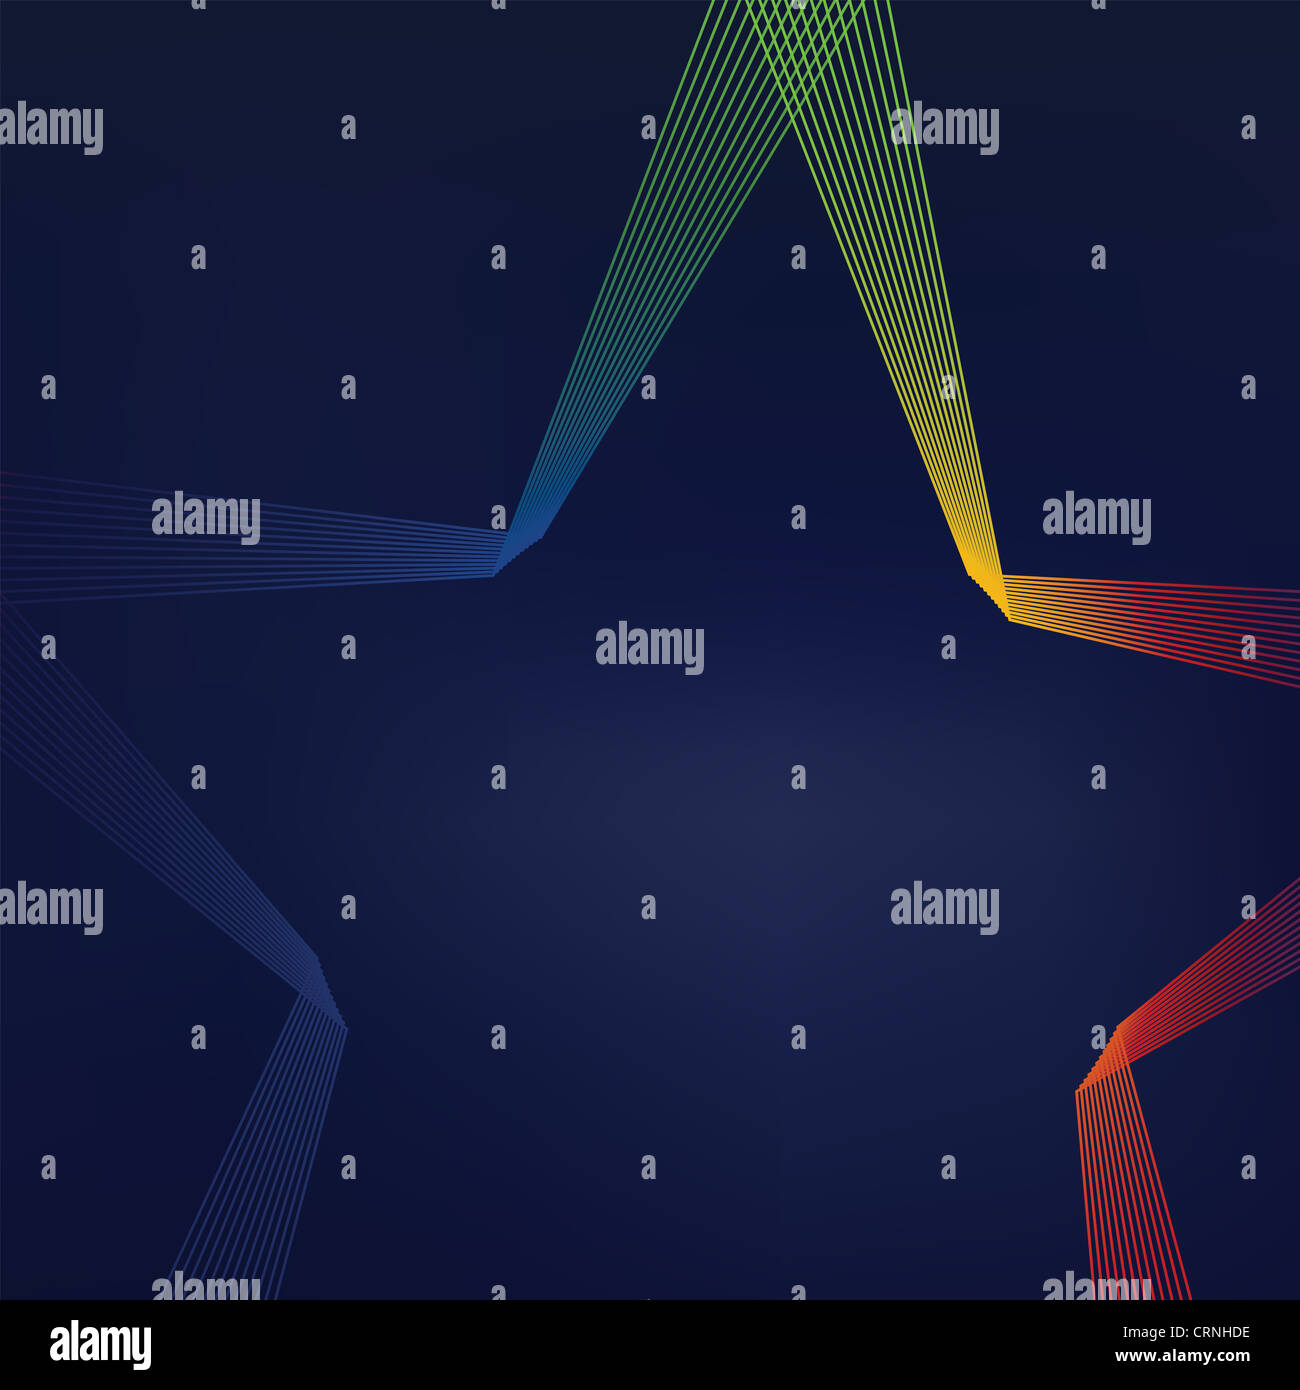 Colorful star shaped lines abstract background - Stock Image